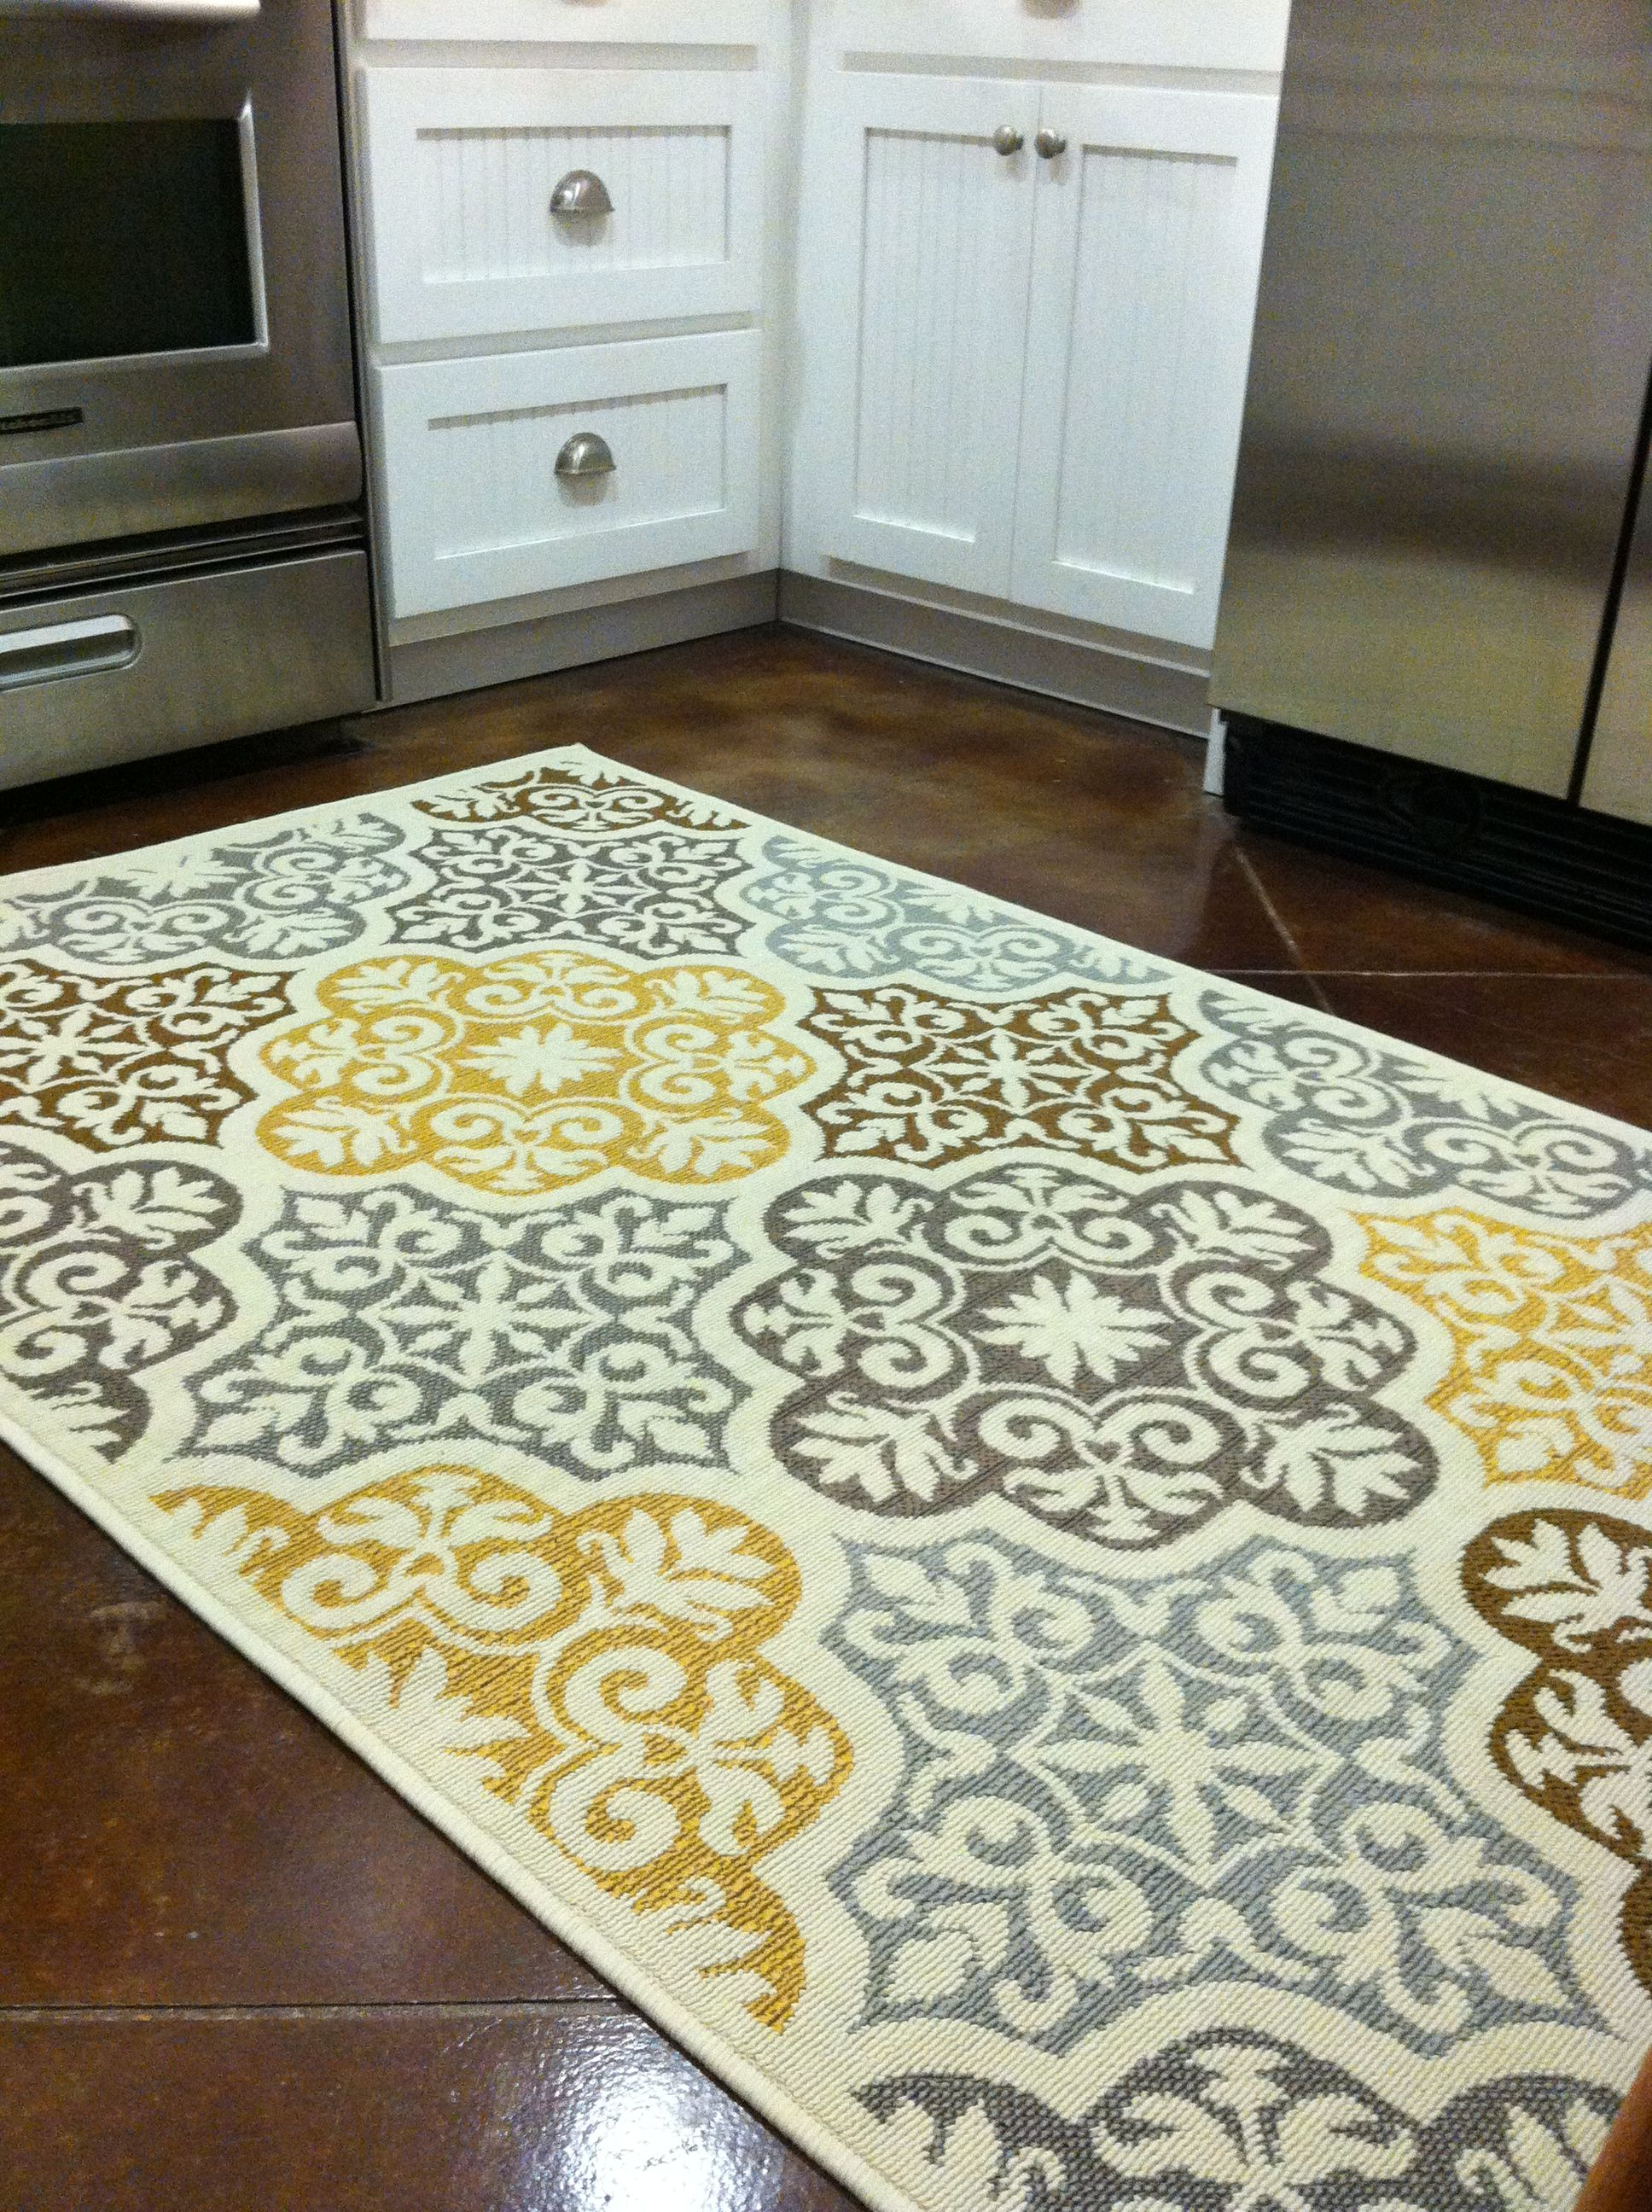 yellow kitchen rugs kitchens on clearance rug purchased from overstock com blue grey brown home decor visit my blog askfordirection net